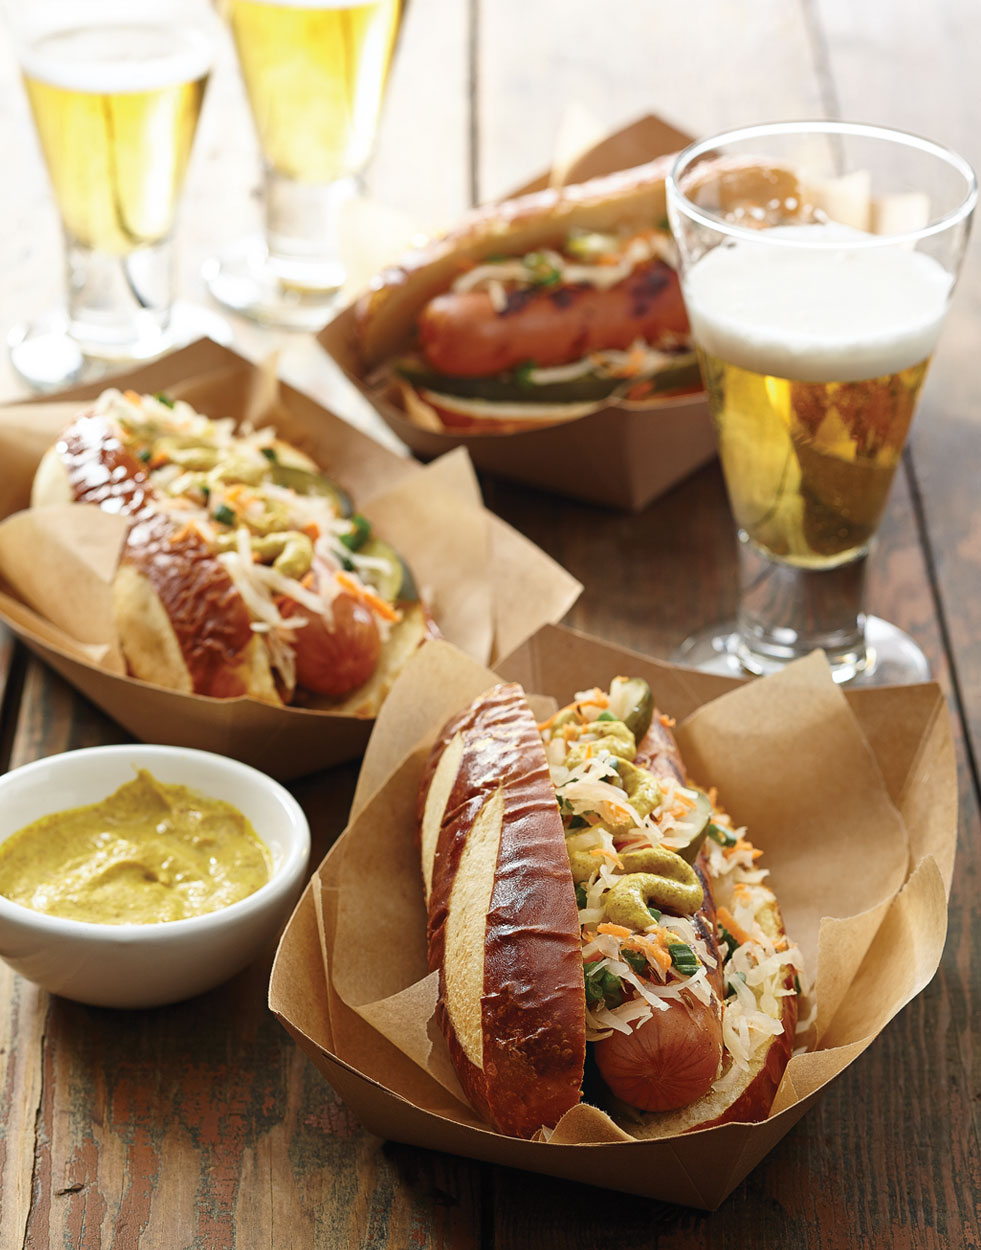 Pretzel Dogs with kraut relish